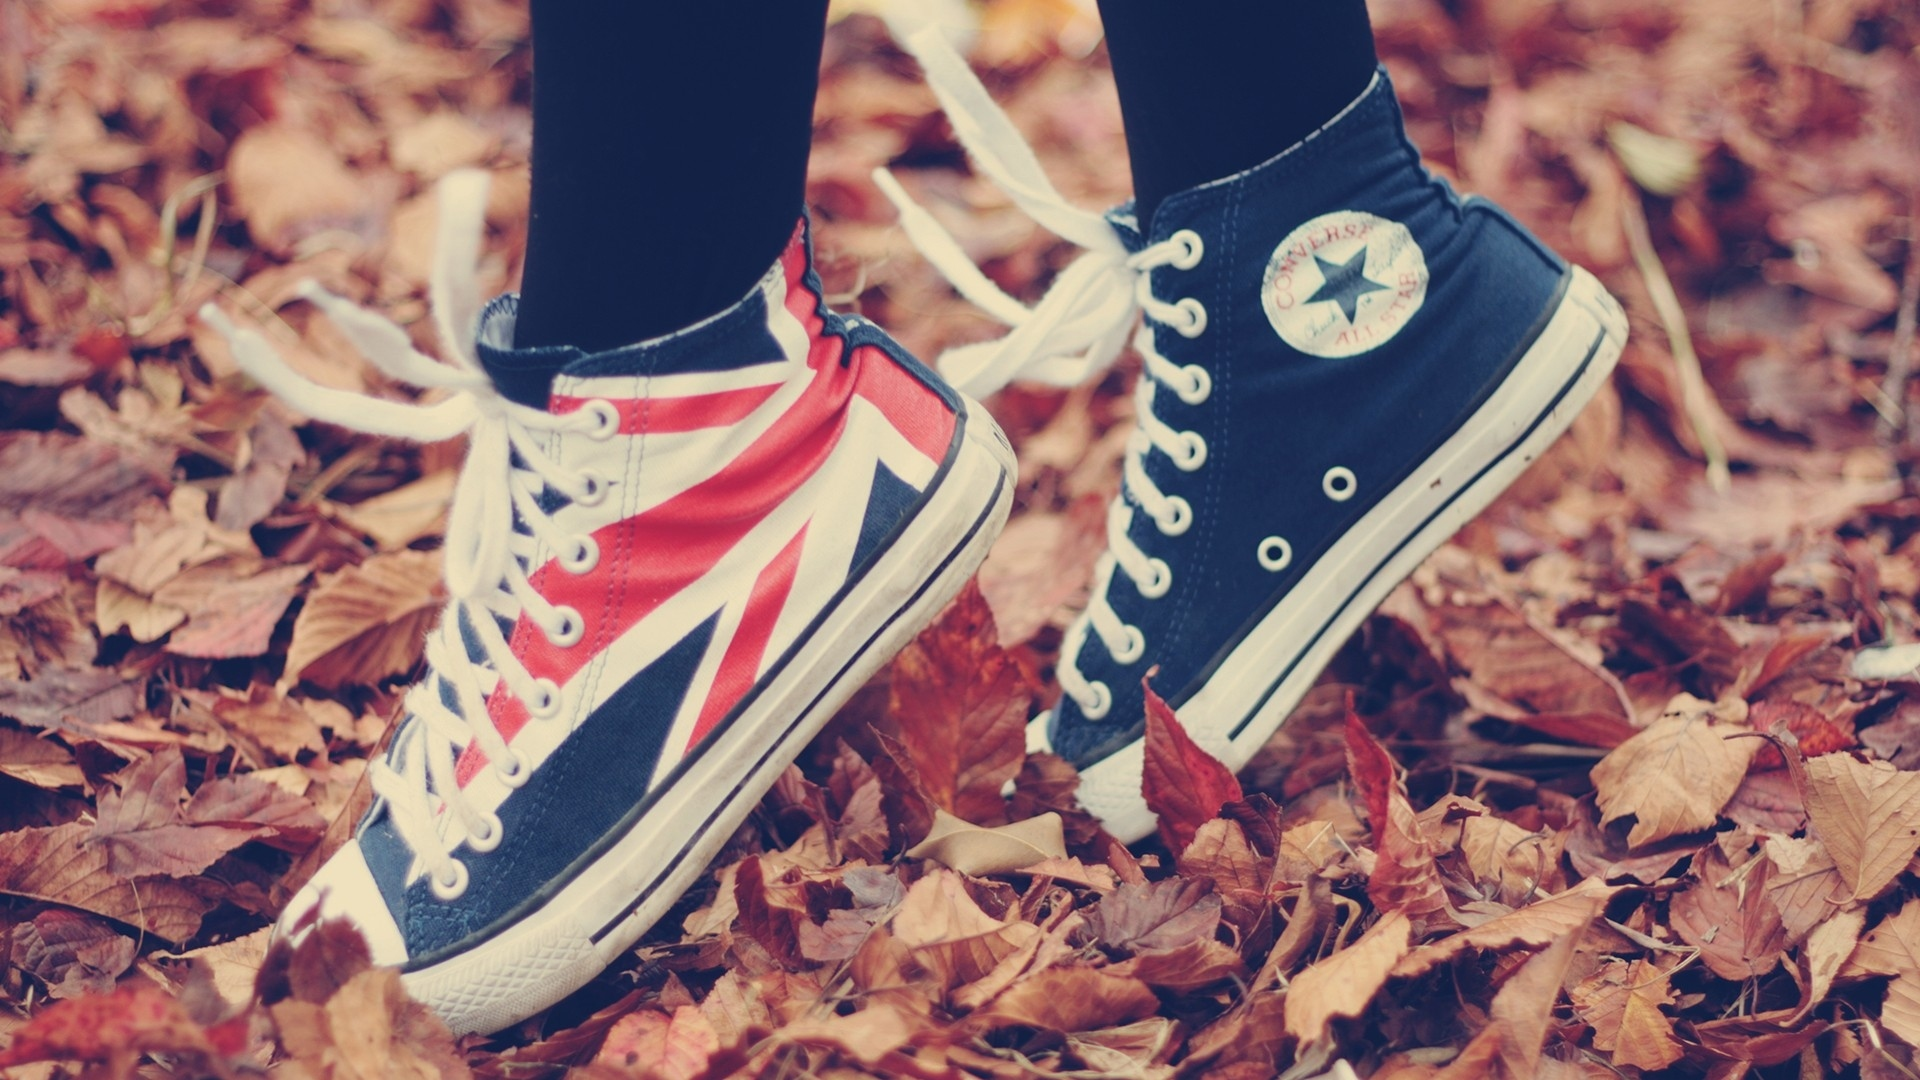 Wallpaper Of Shoes